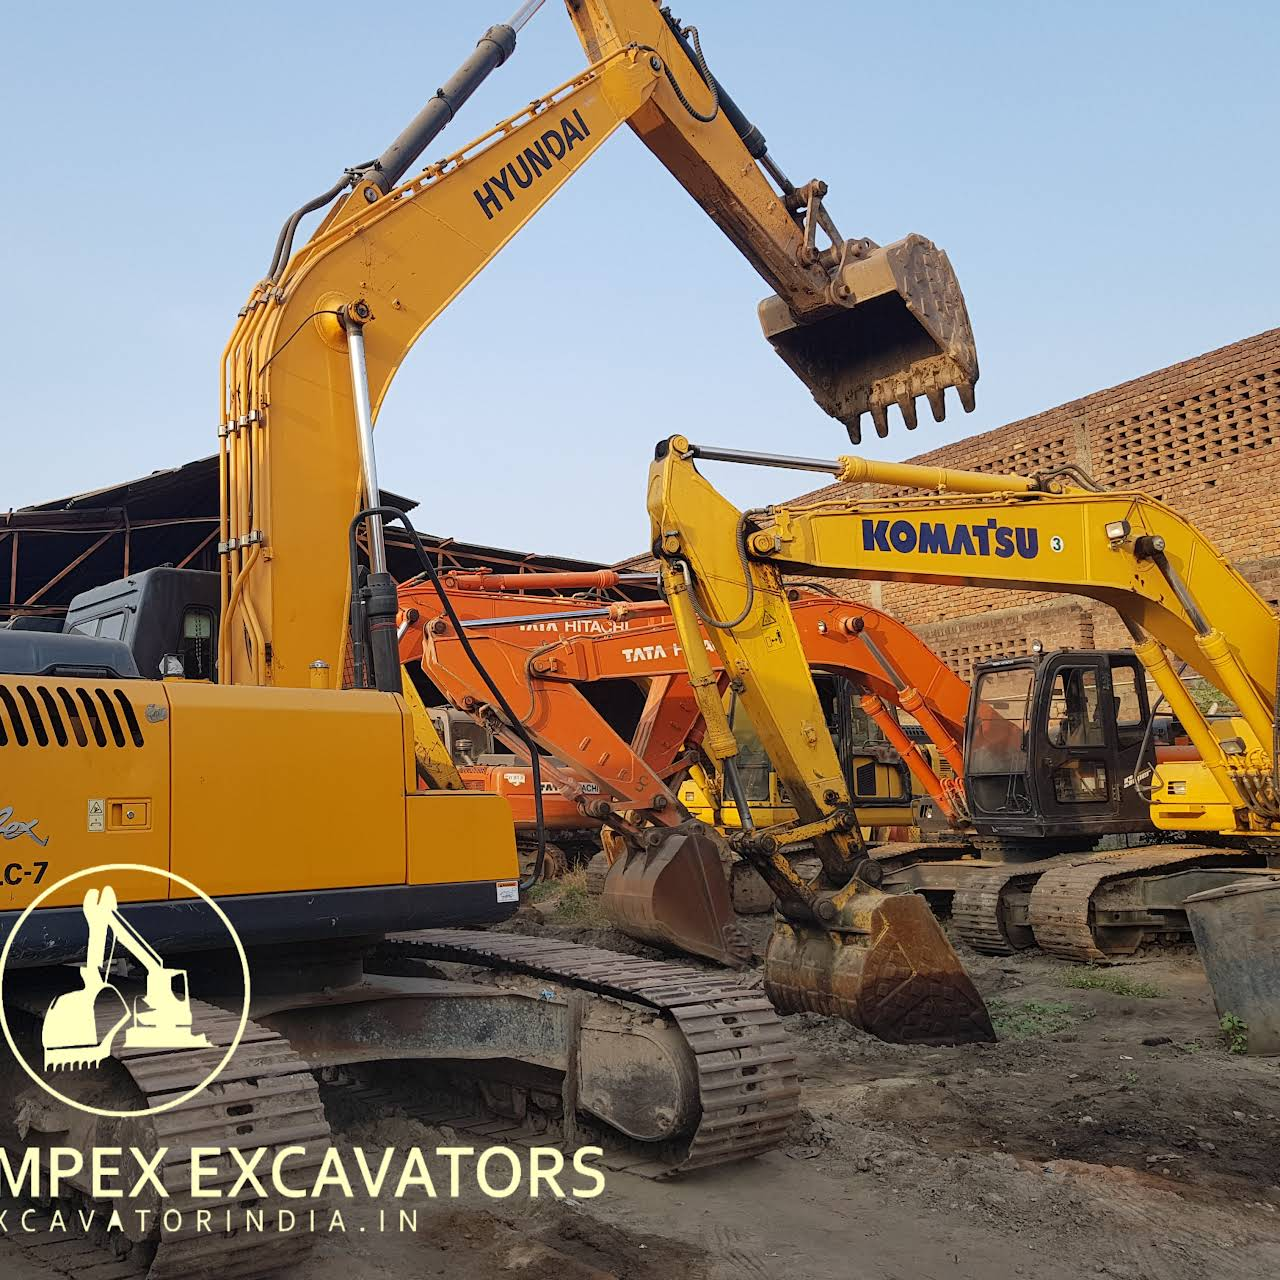 Salasar Impex - Construction Equipment Supplier in New Delhi